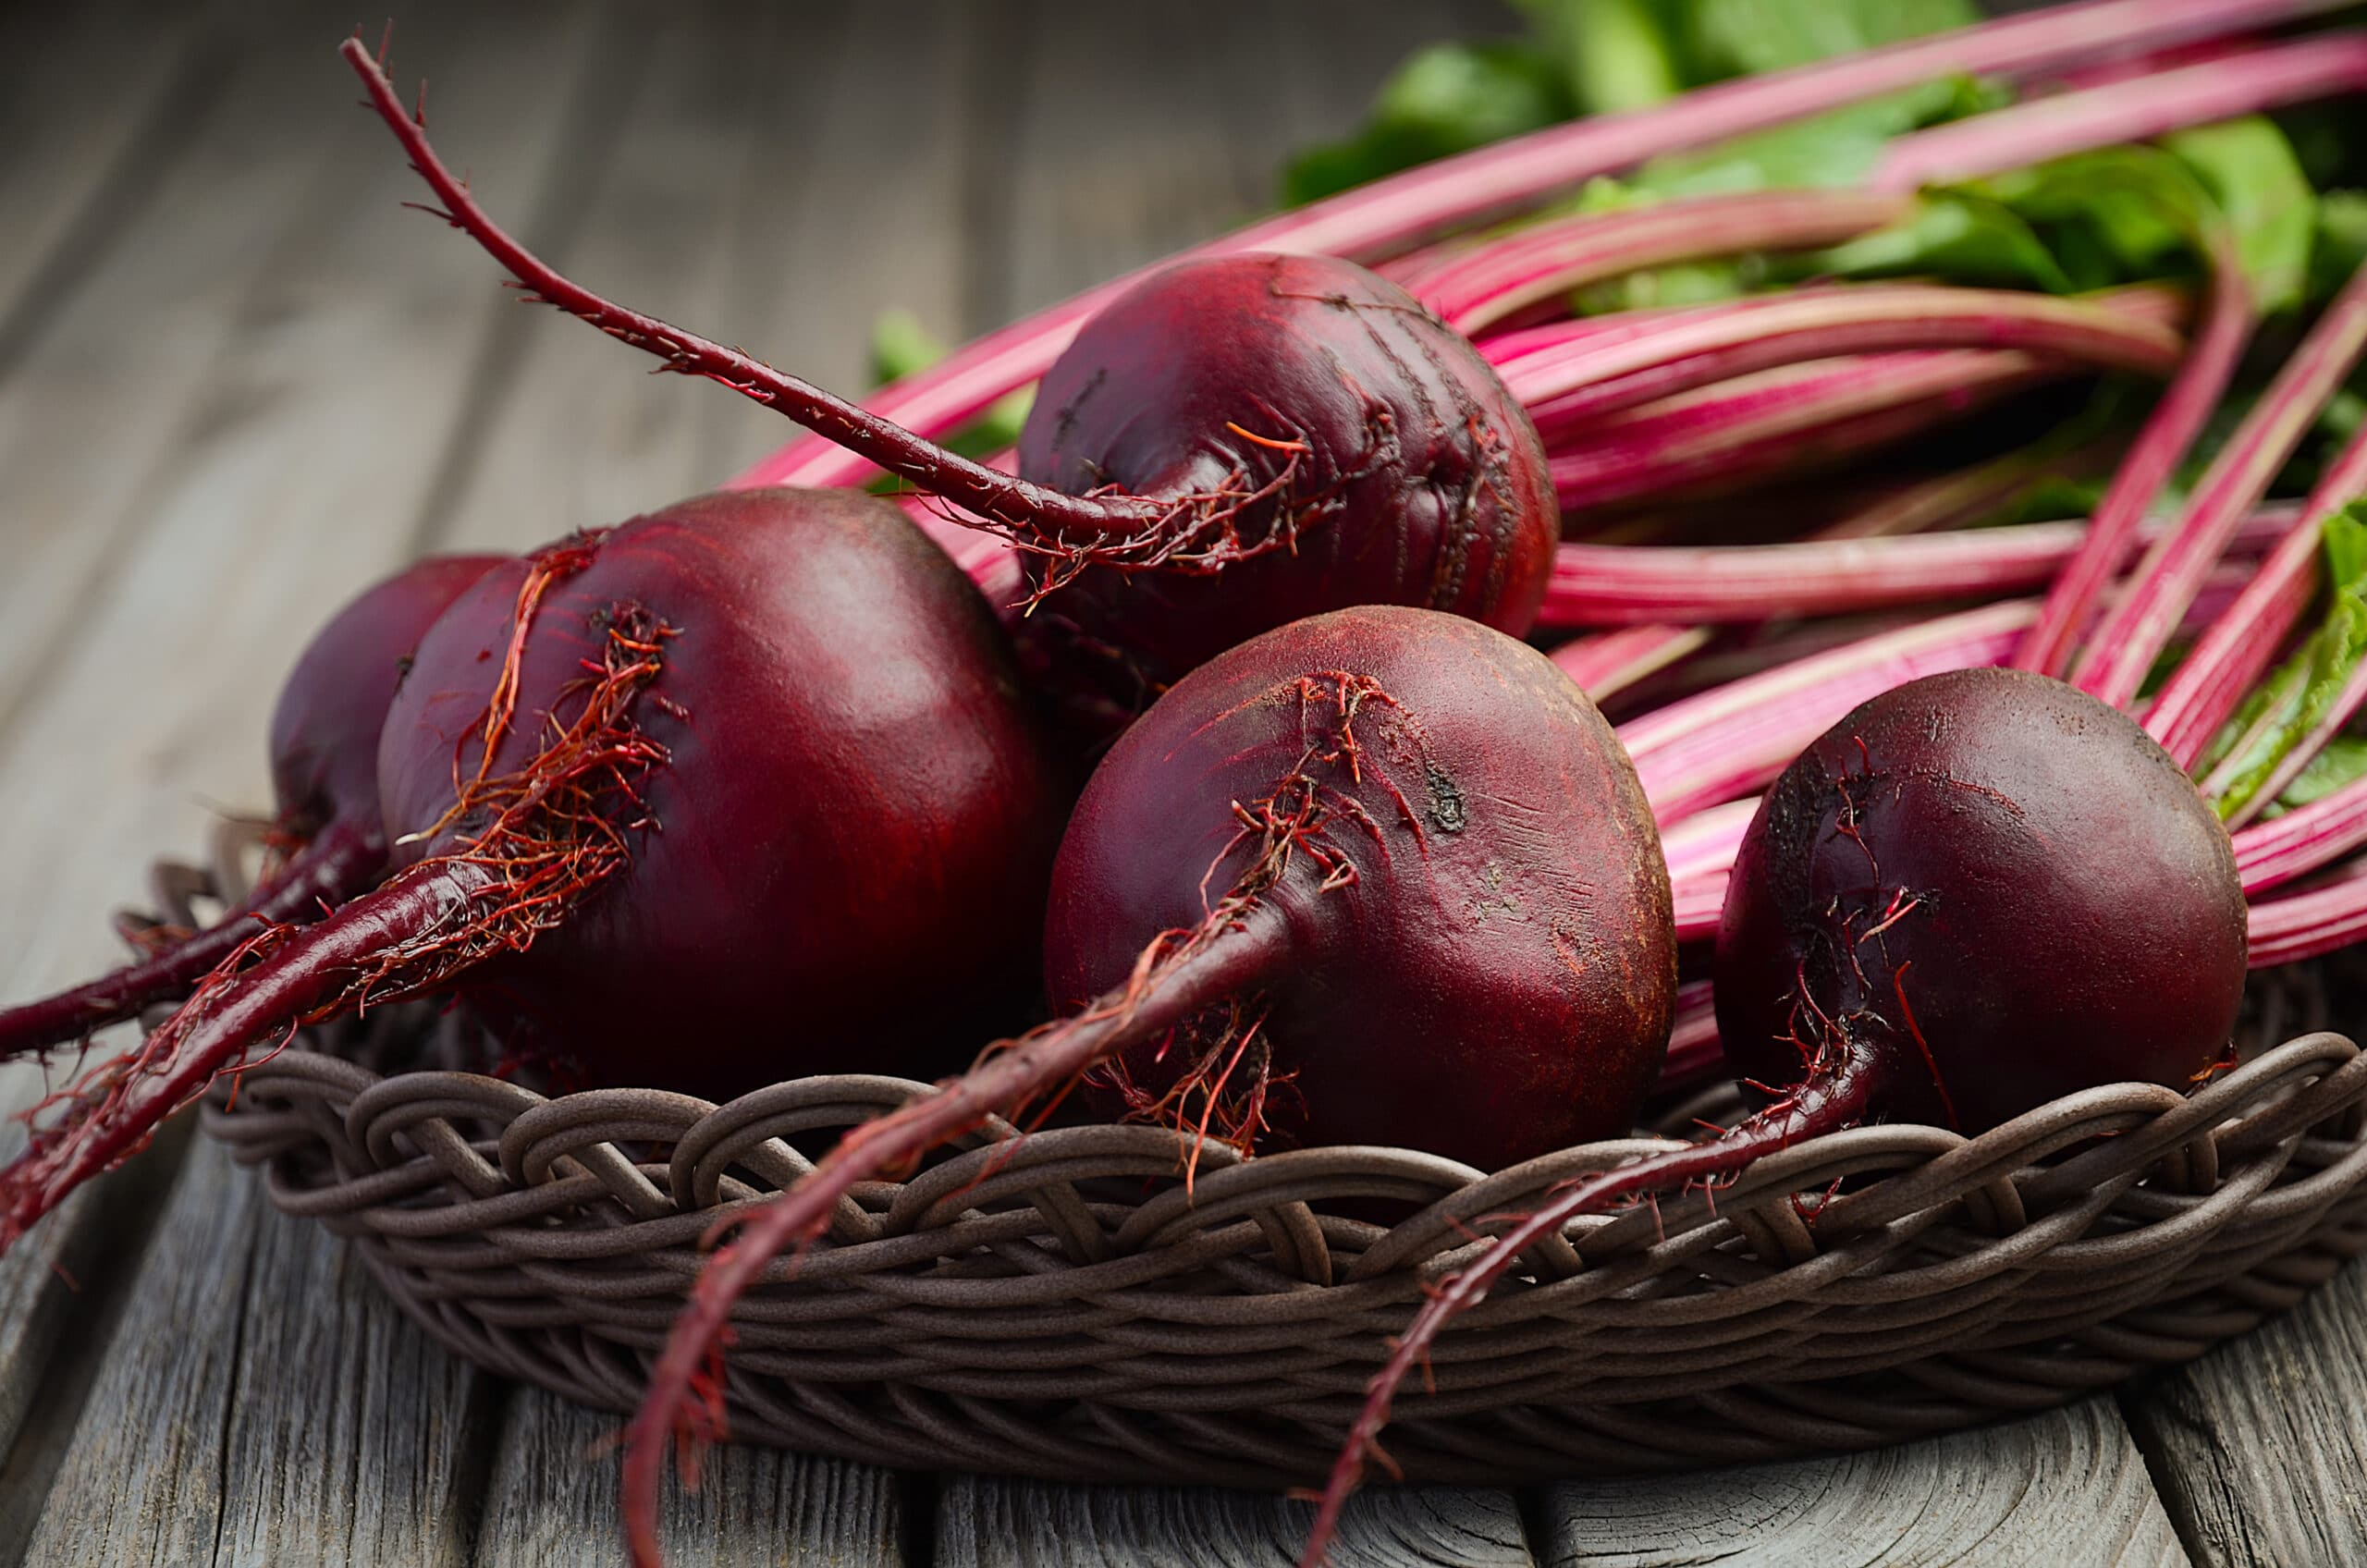 bunch-fresh-organic-beets-rustic-wooden-table